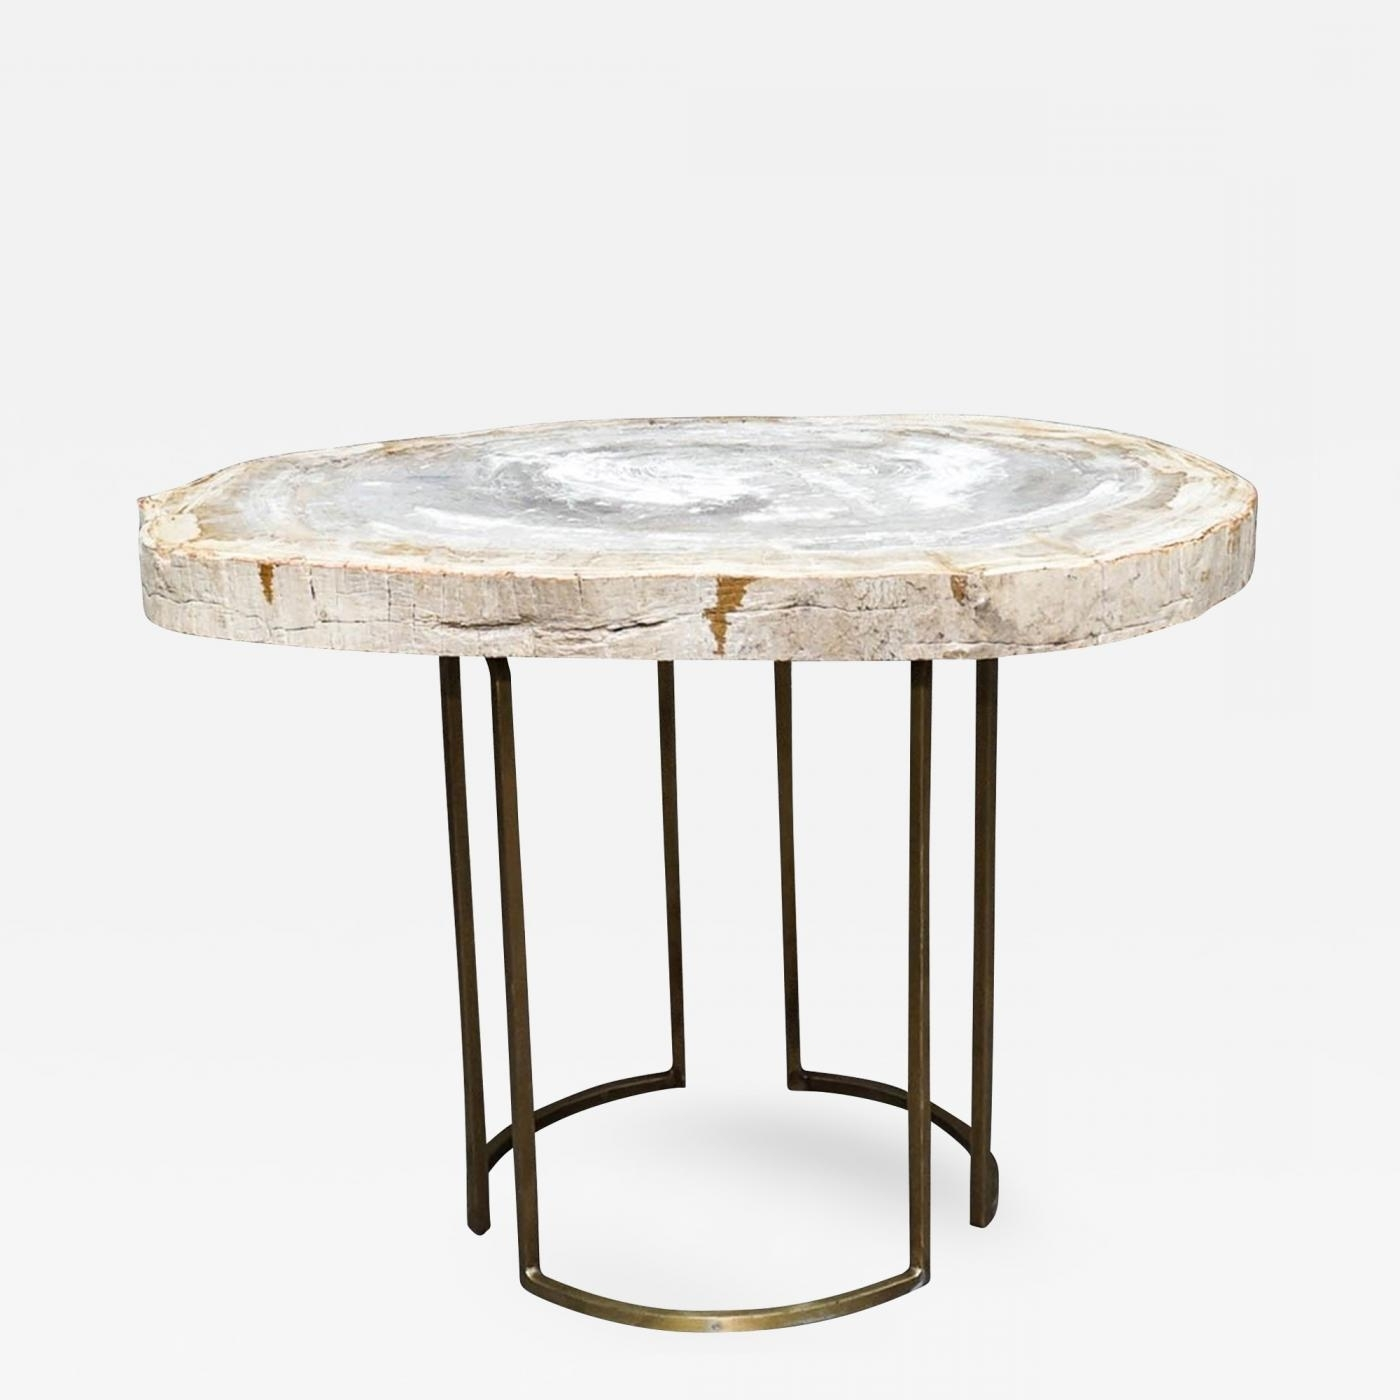 Custom Petrified Wood Slab Accent Table With Brass Base Inside Latest Slab Large Marble Coffee Tables With Brass Base (View 6 of 20)